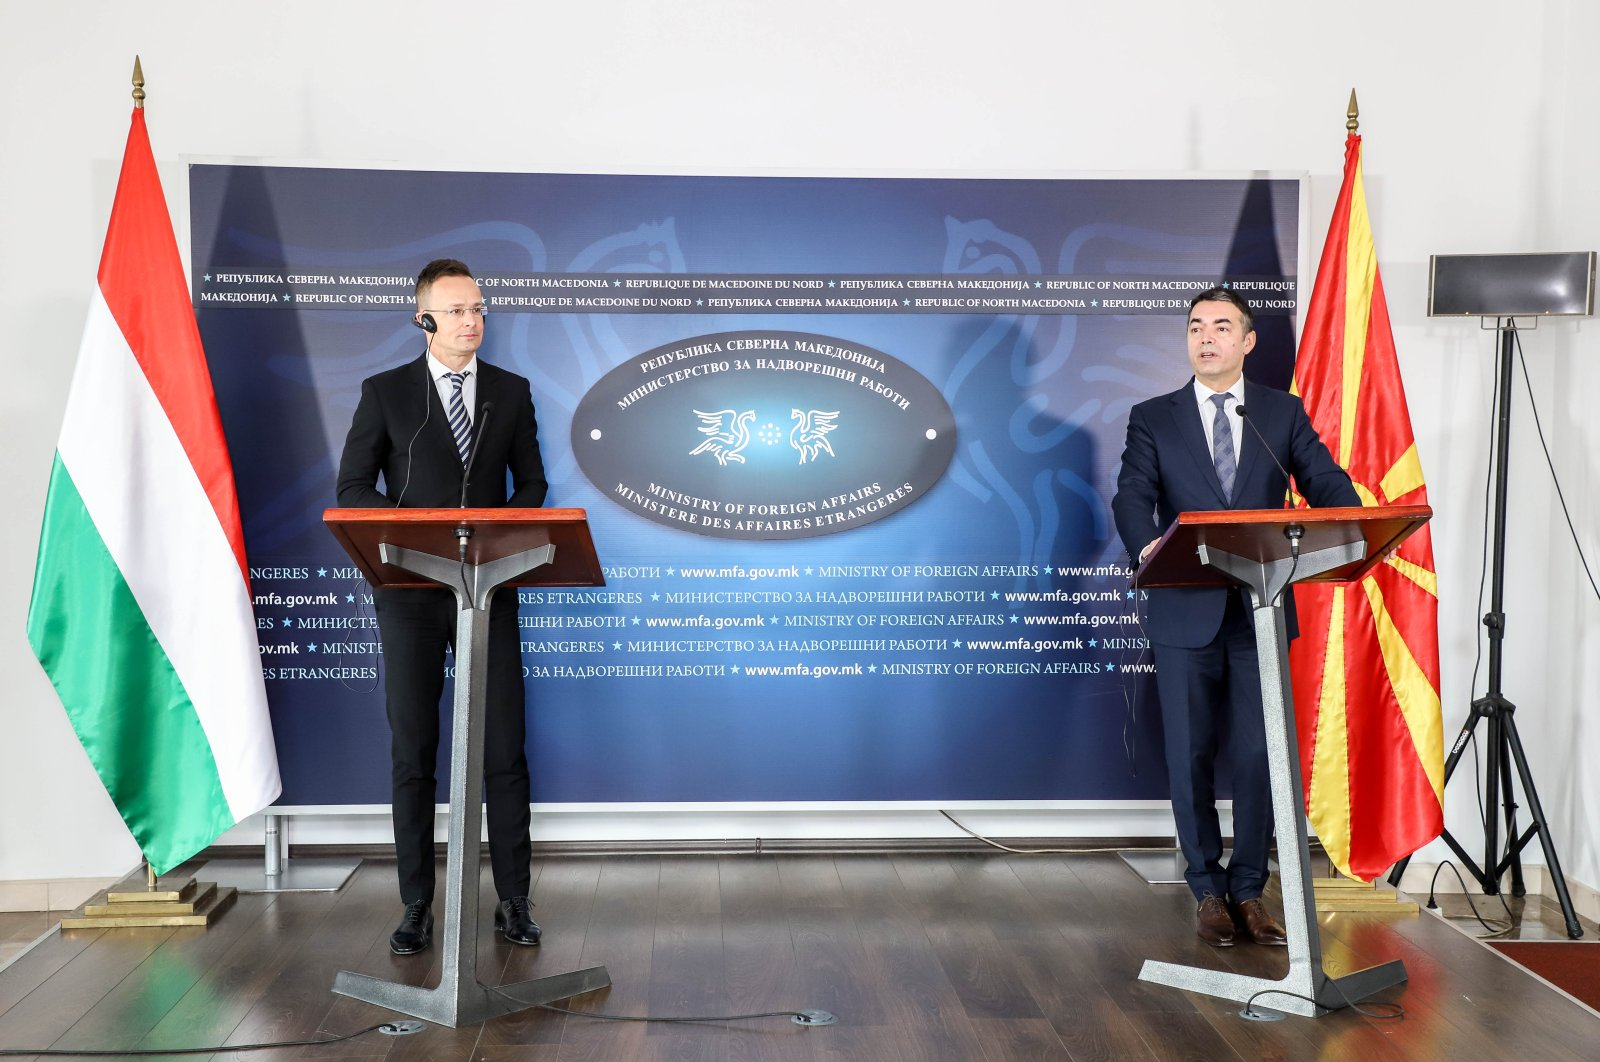 North Macedonia's Foreign Minister Nikola Dimitrov (R) speaking at a joint press conference with his Hungarian counterpart Peter Szijjarto (L), Monday, April 6, 2020. (AA Photo)